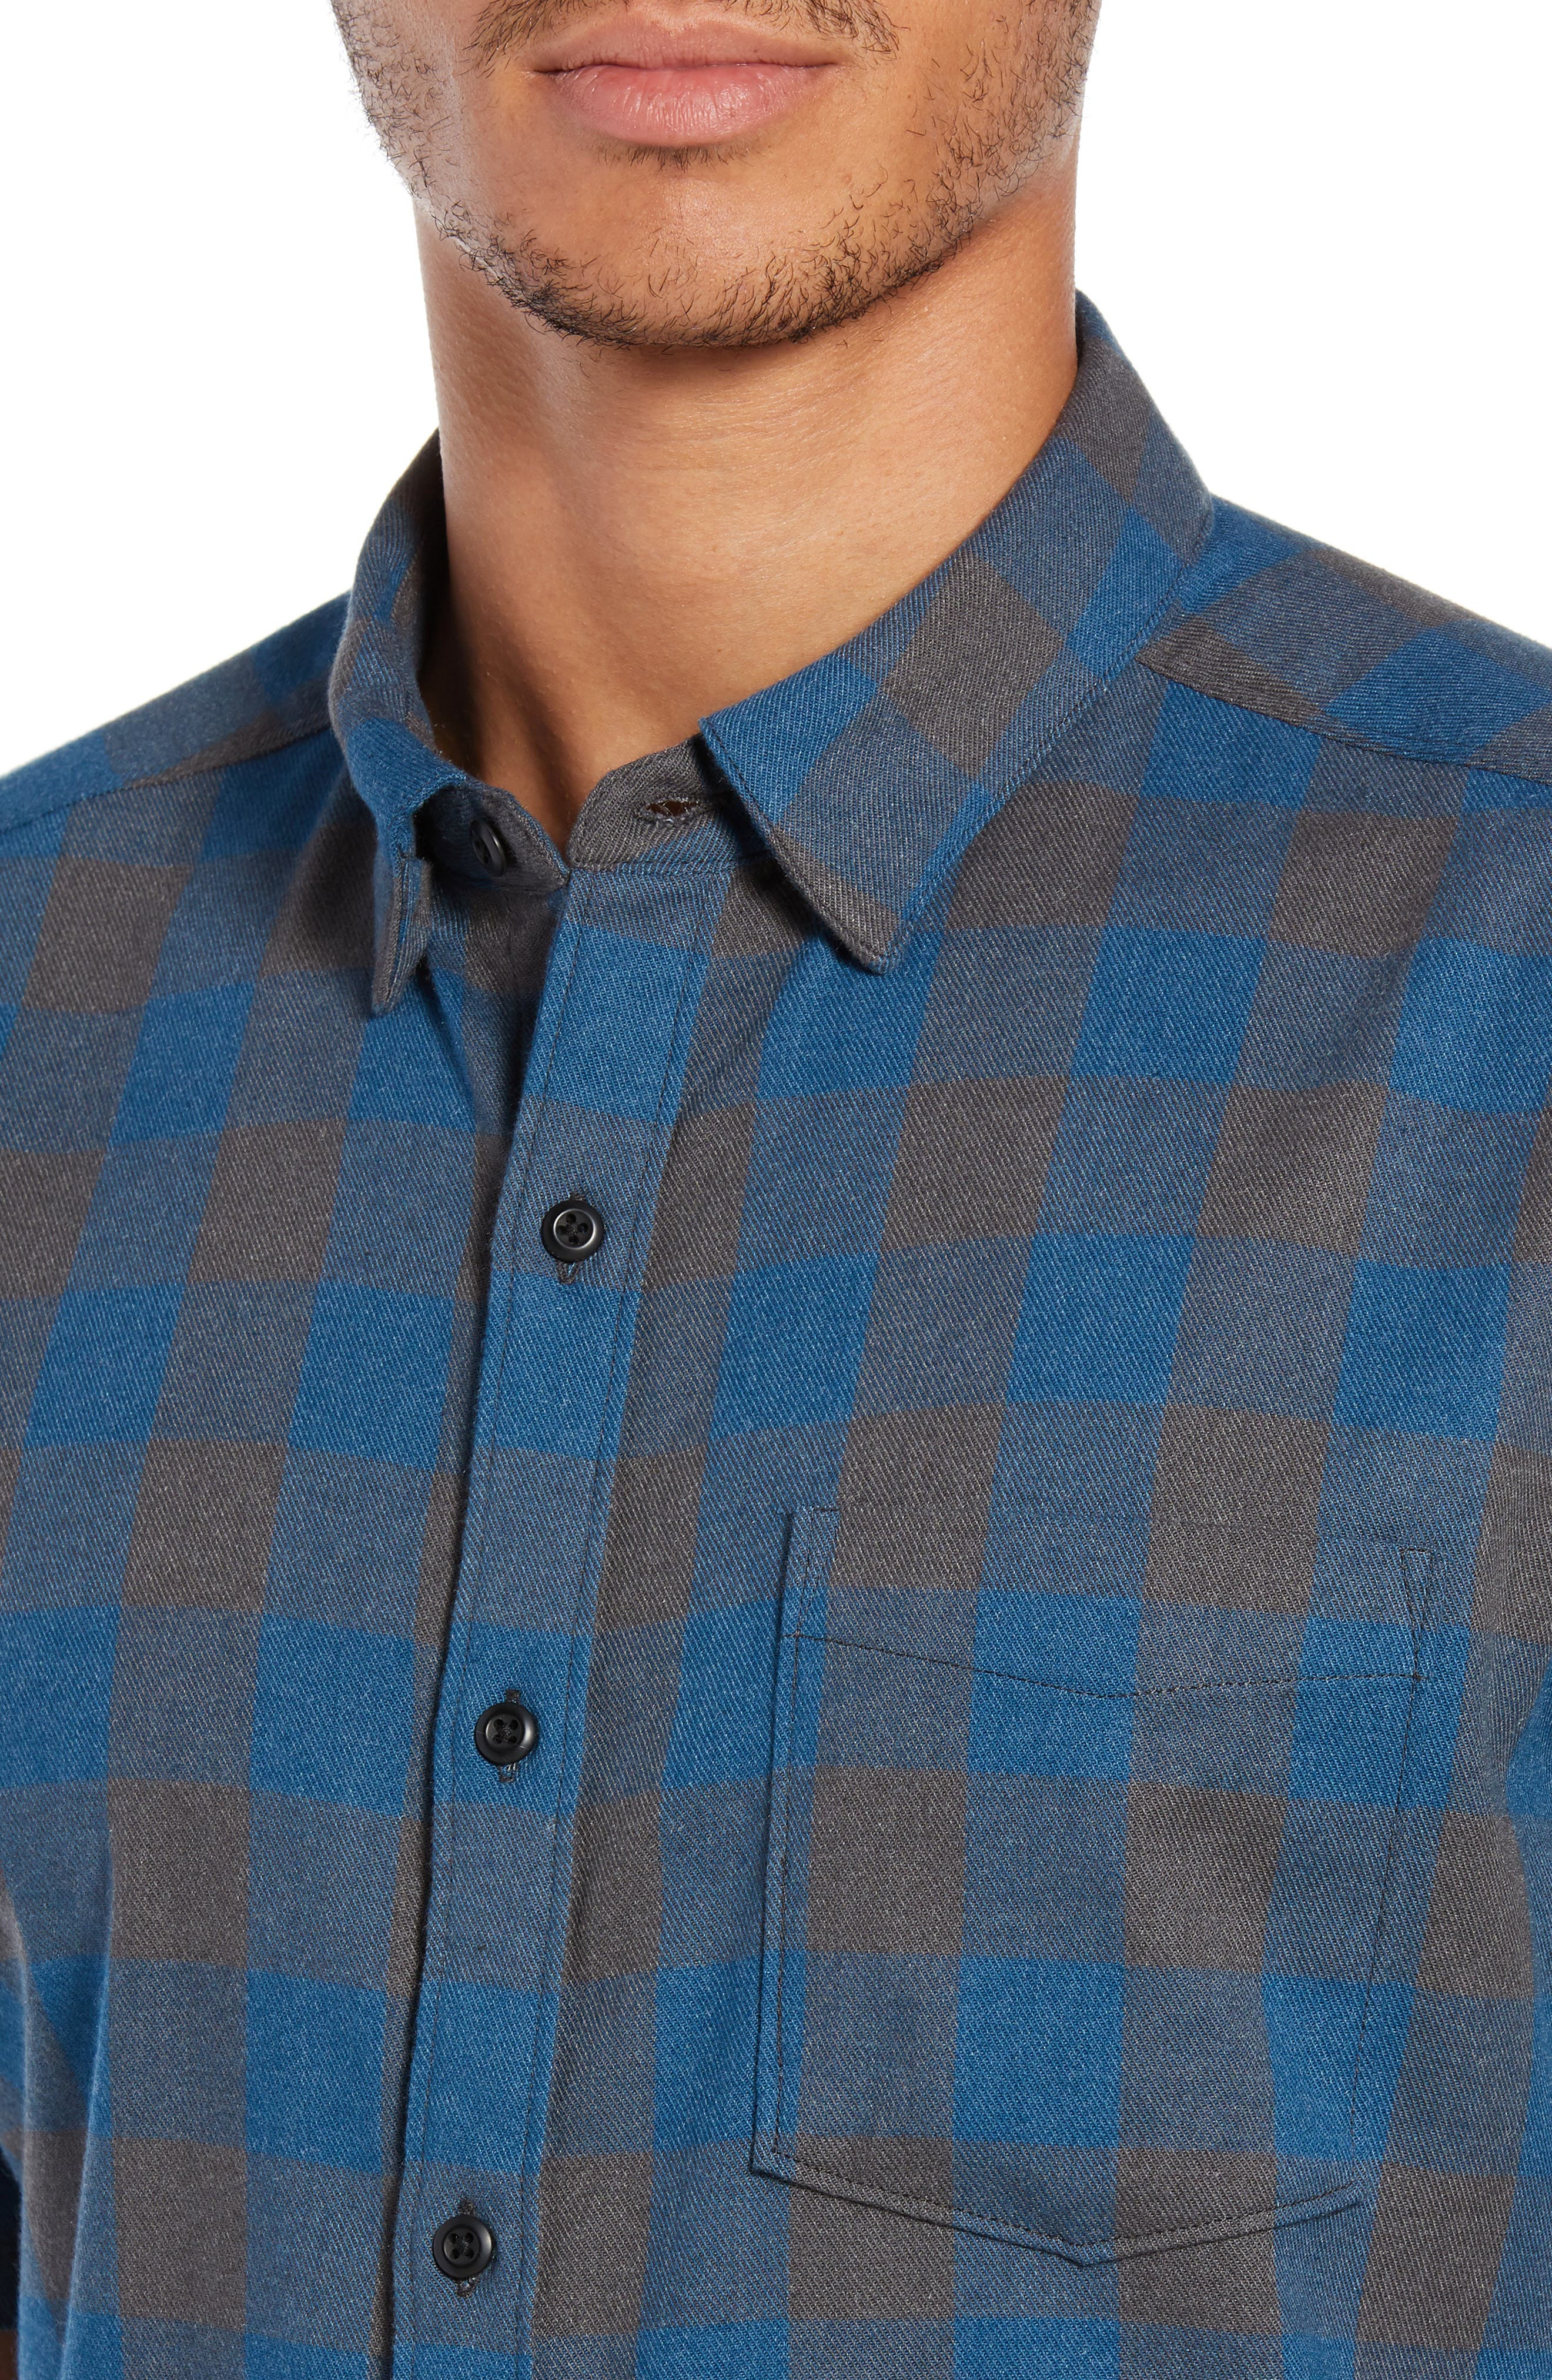 Bison Check Twill Woven Shirt,                             Alternate thumbnail 2, color,                             BLUE FORCE HEATHER